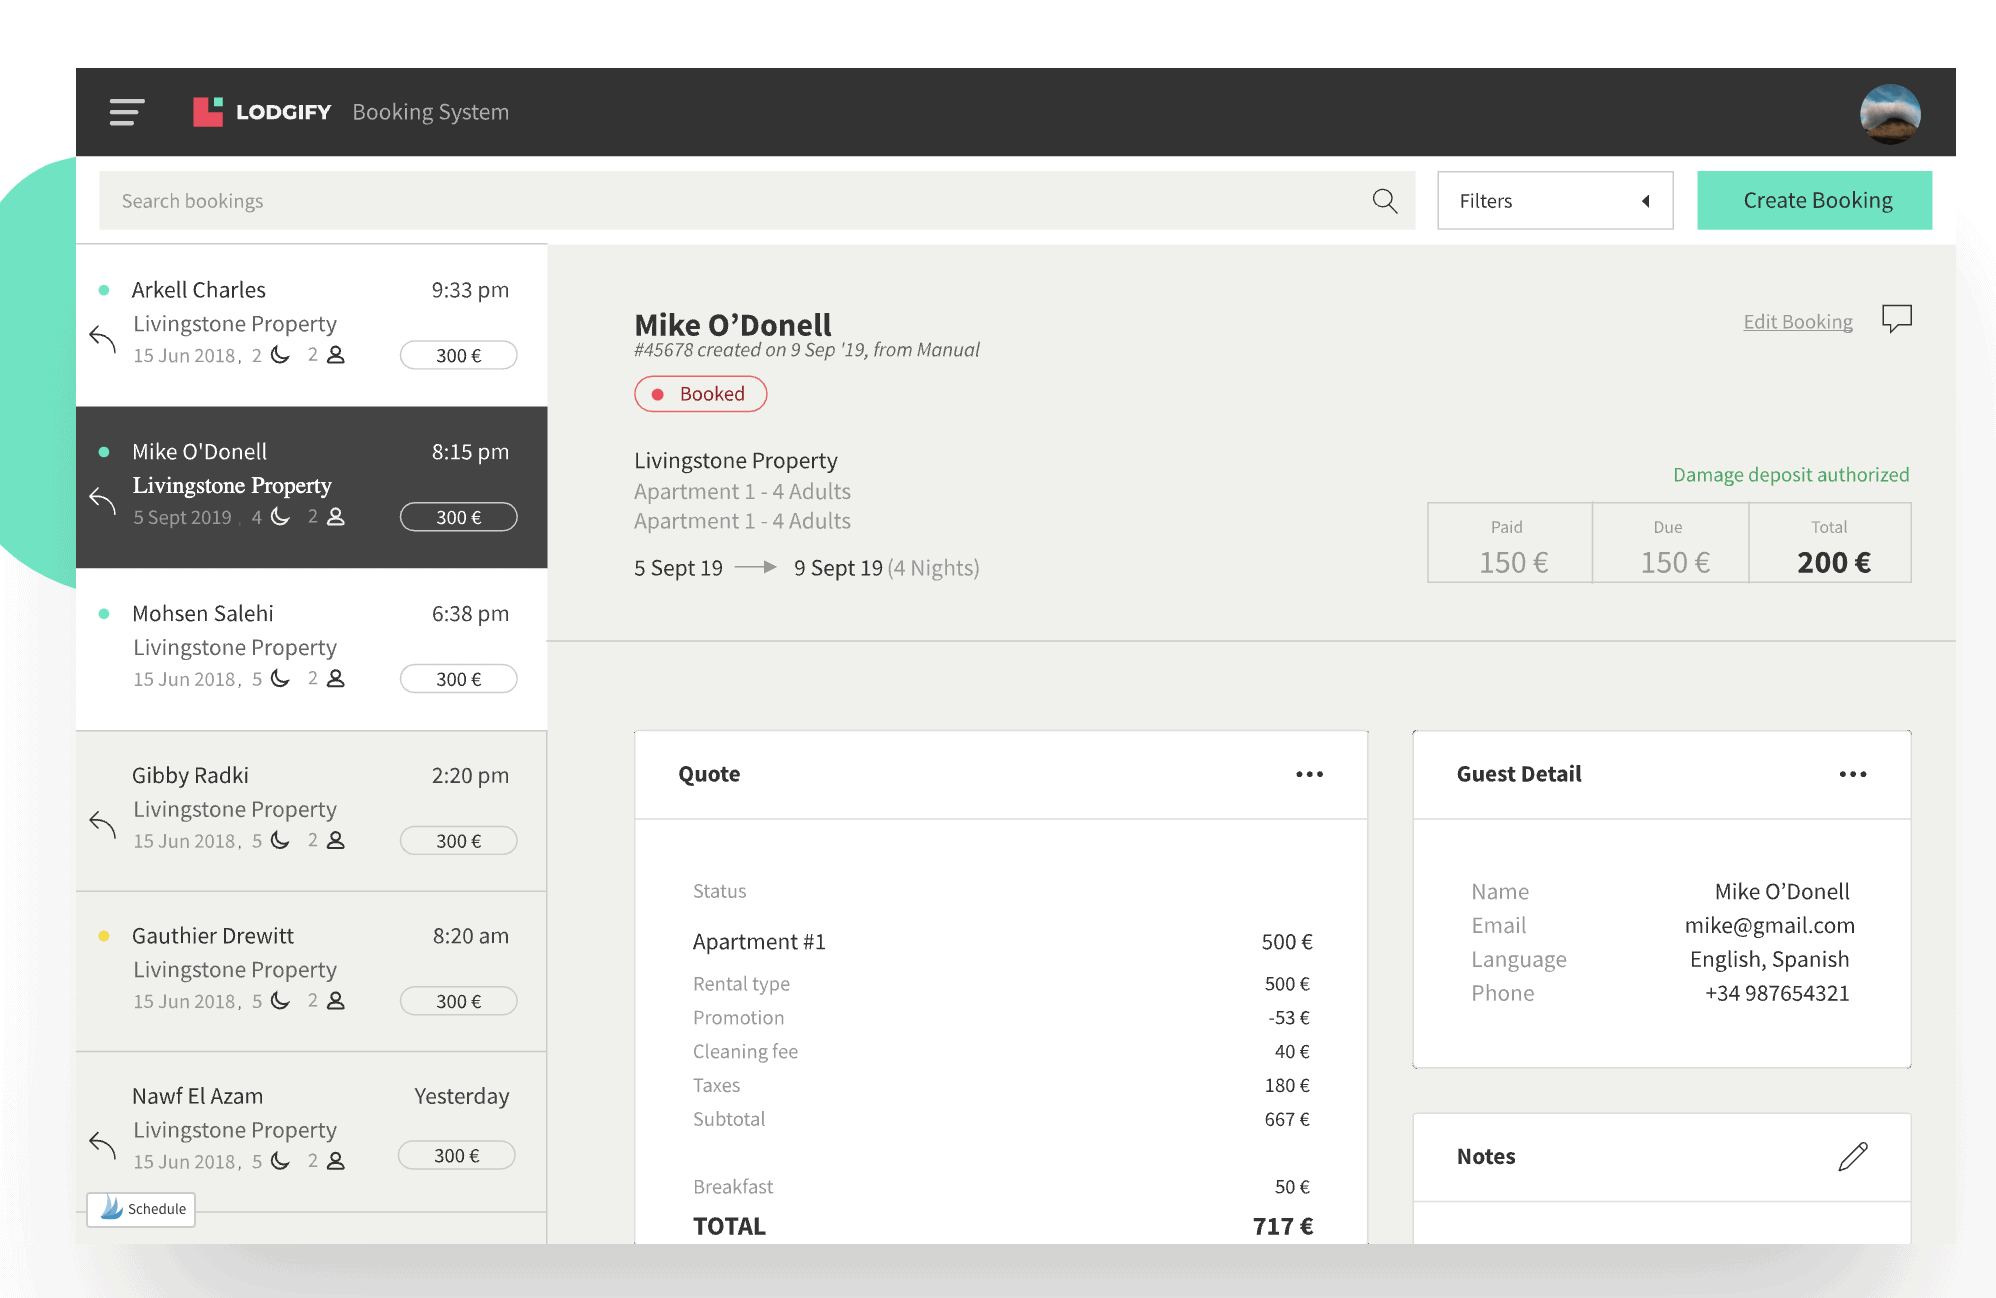 Lodgify booking system